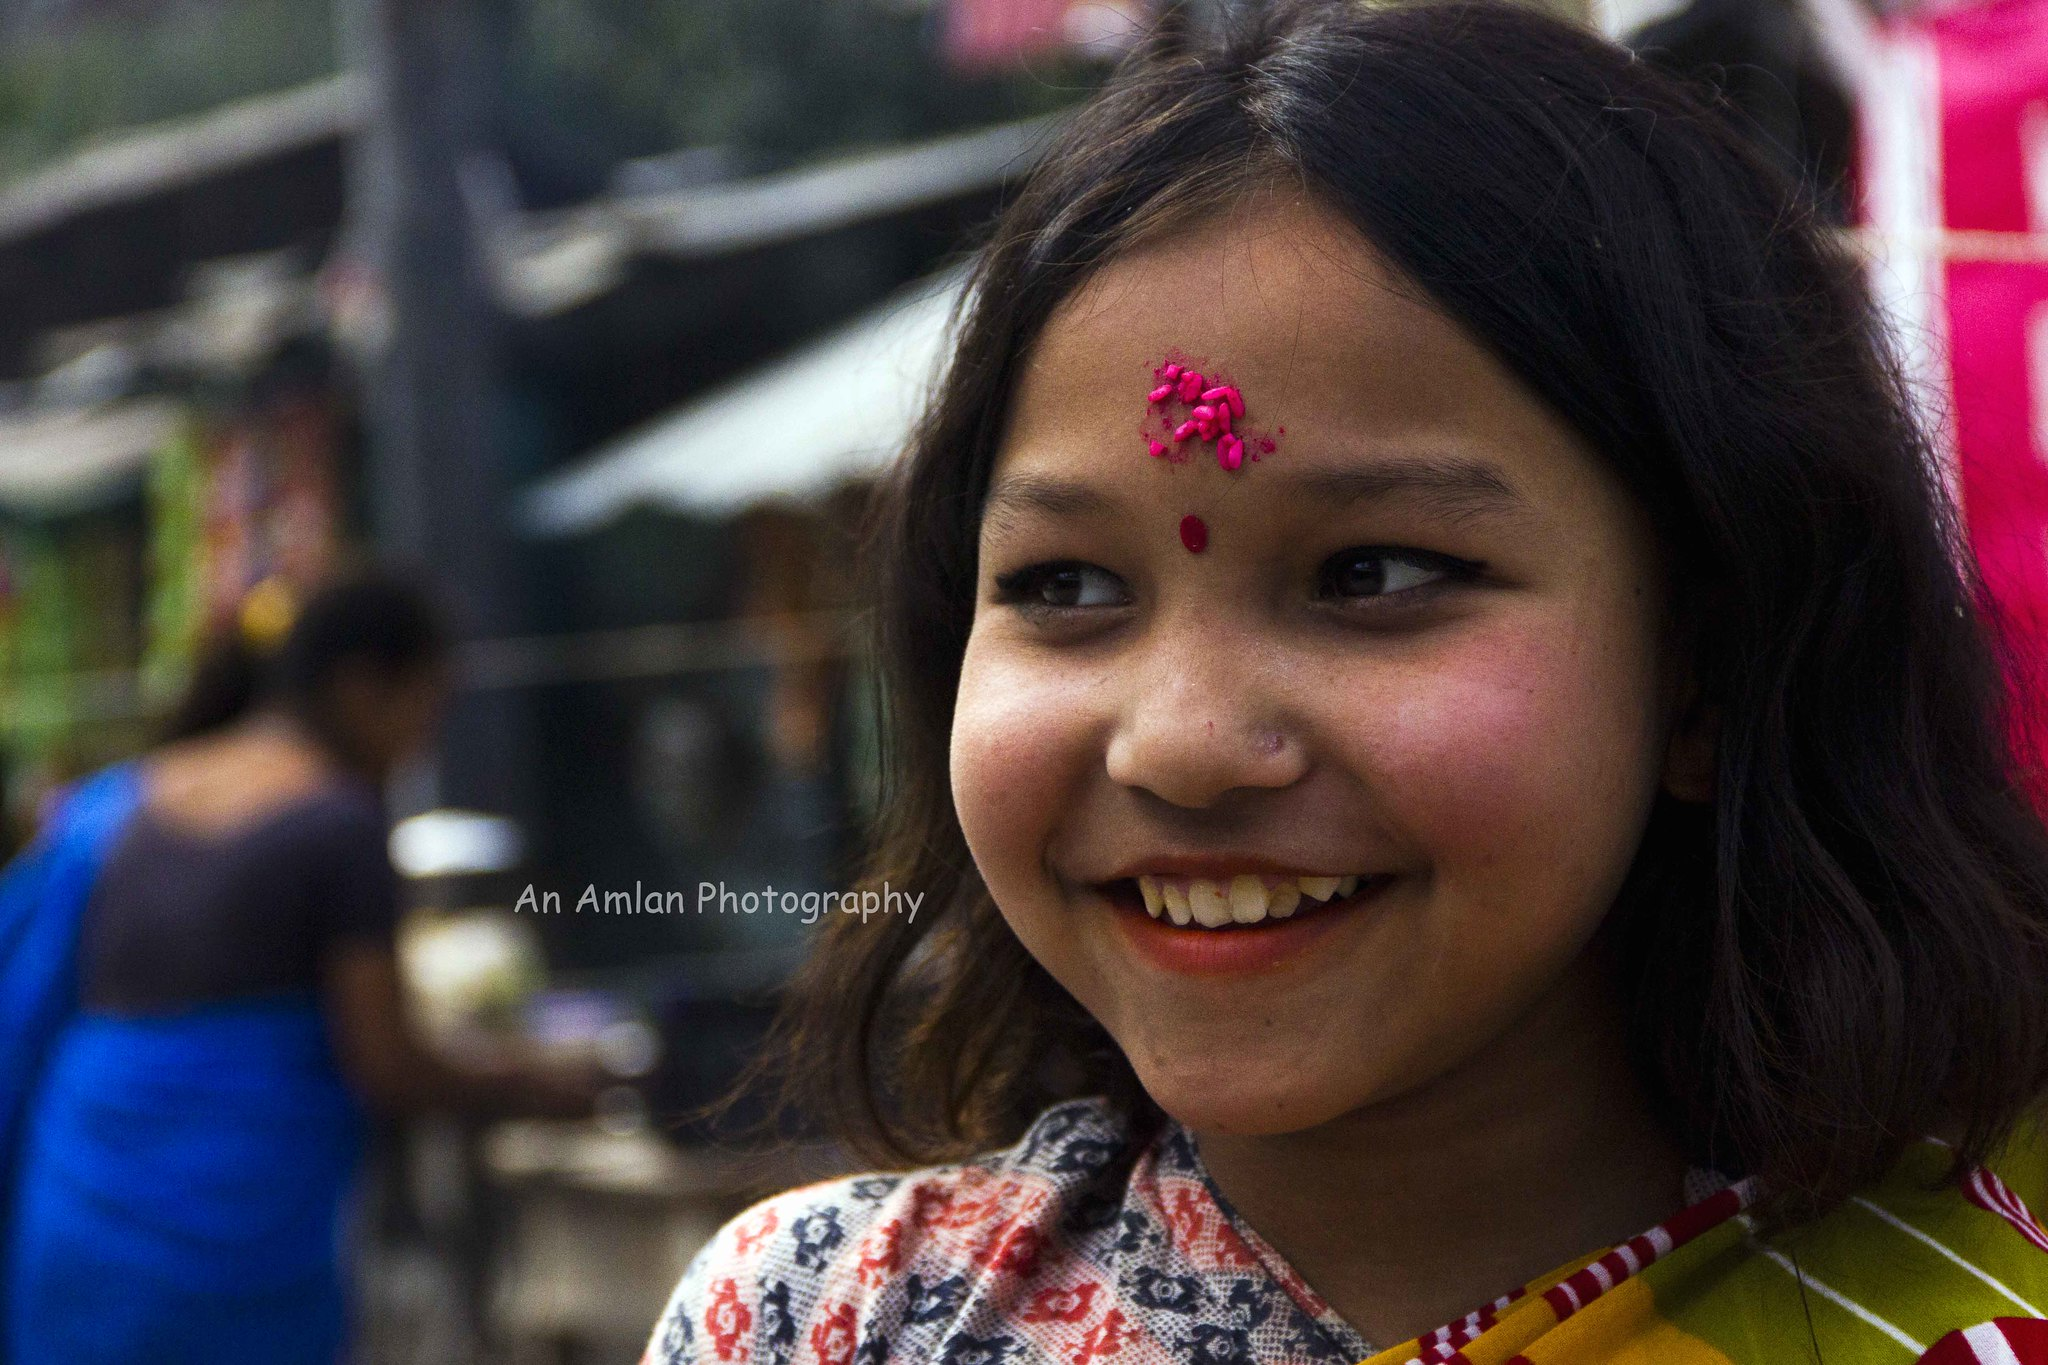 Little nepali girl